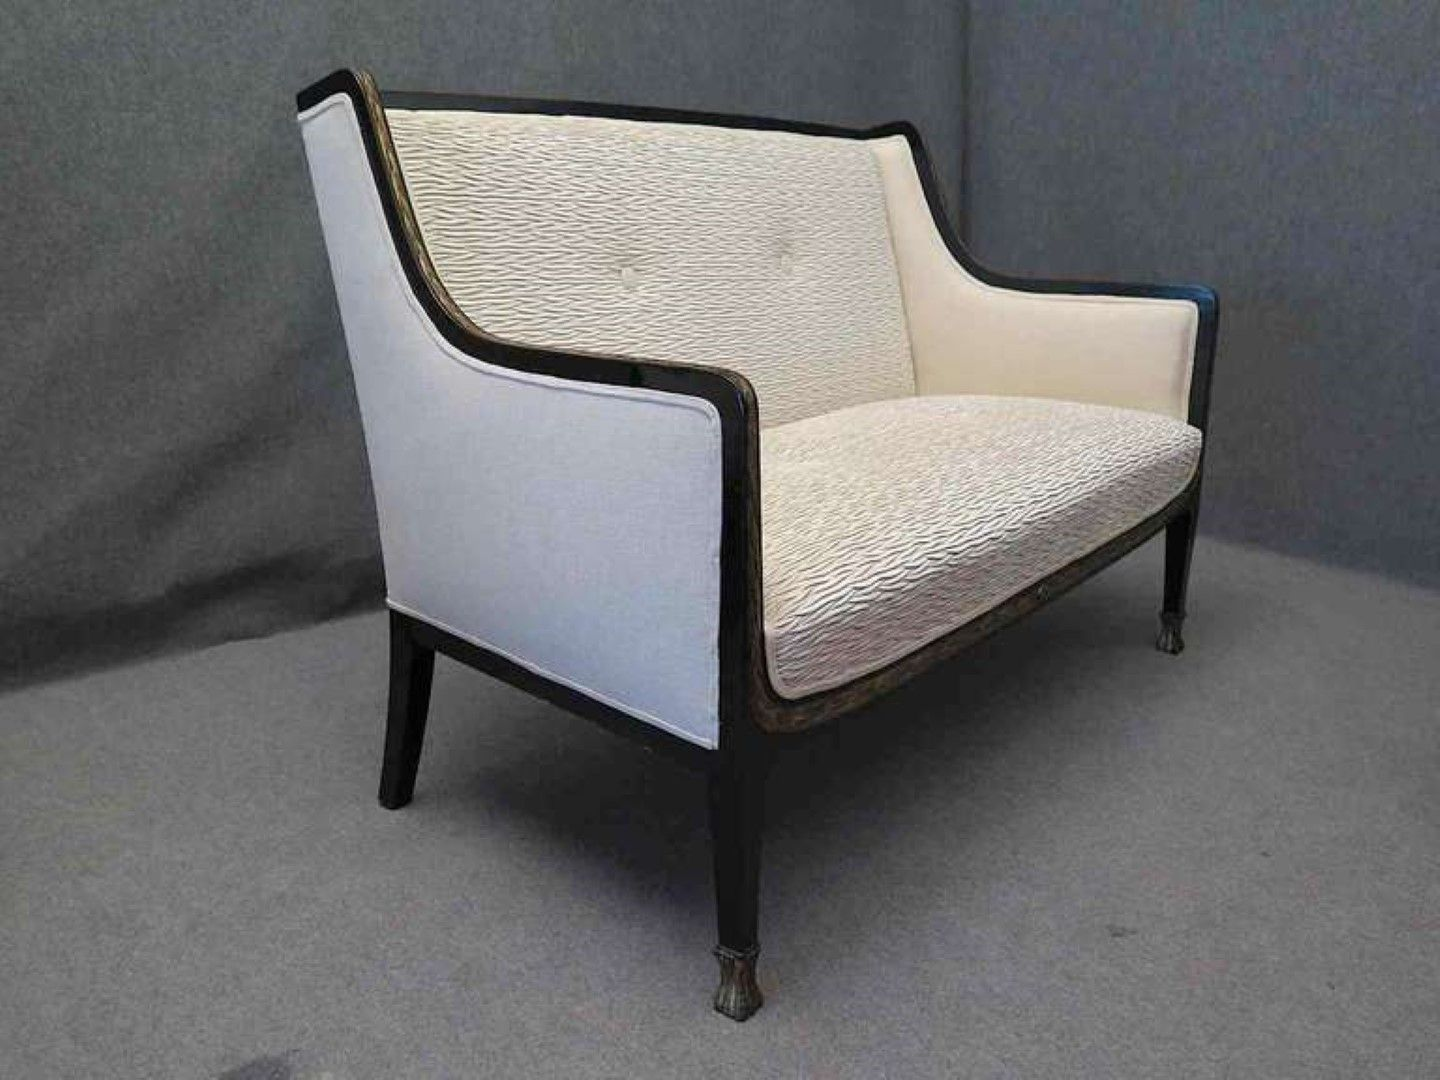 austrian art deco sofa 1920s for sale at pamono. Black Bedroom Furniture Sets. Home Design Ideas